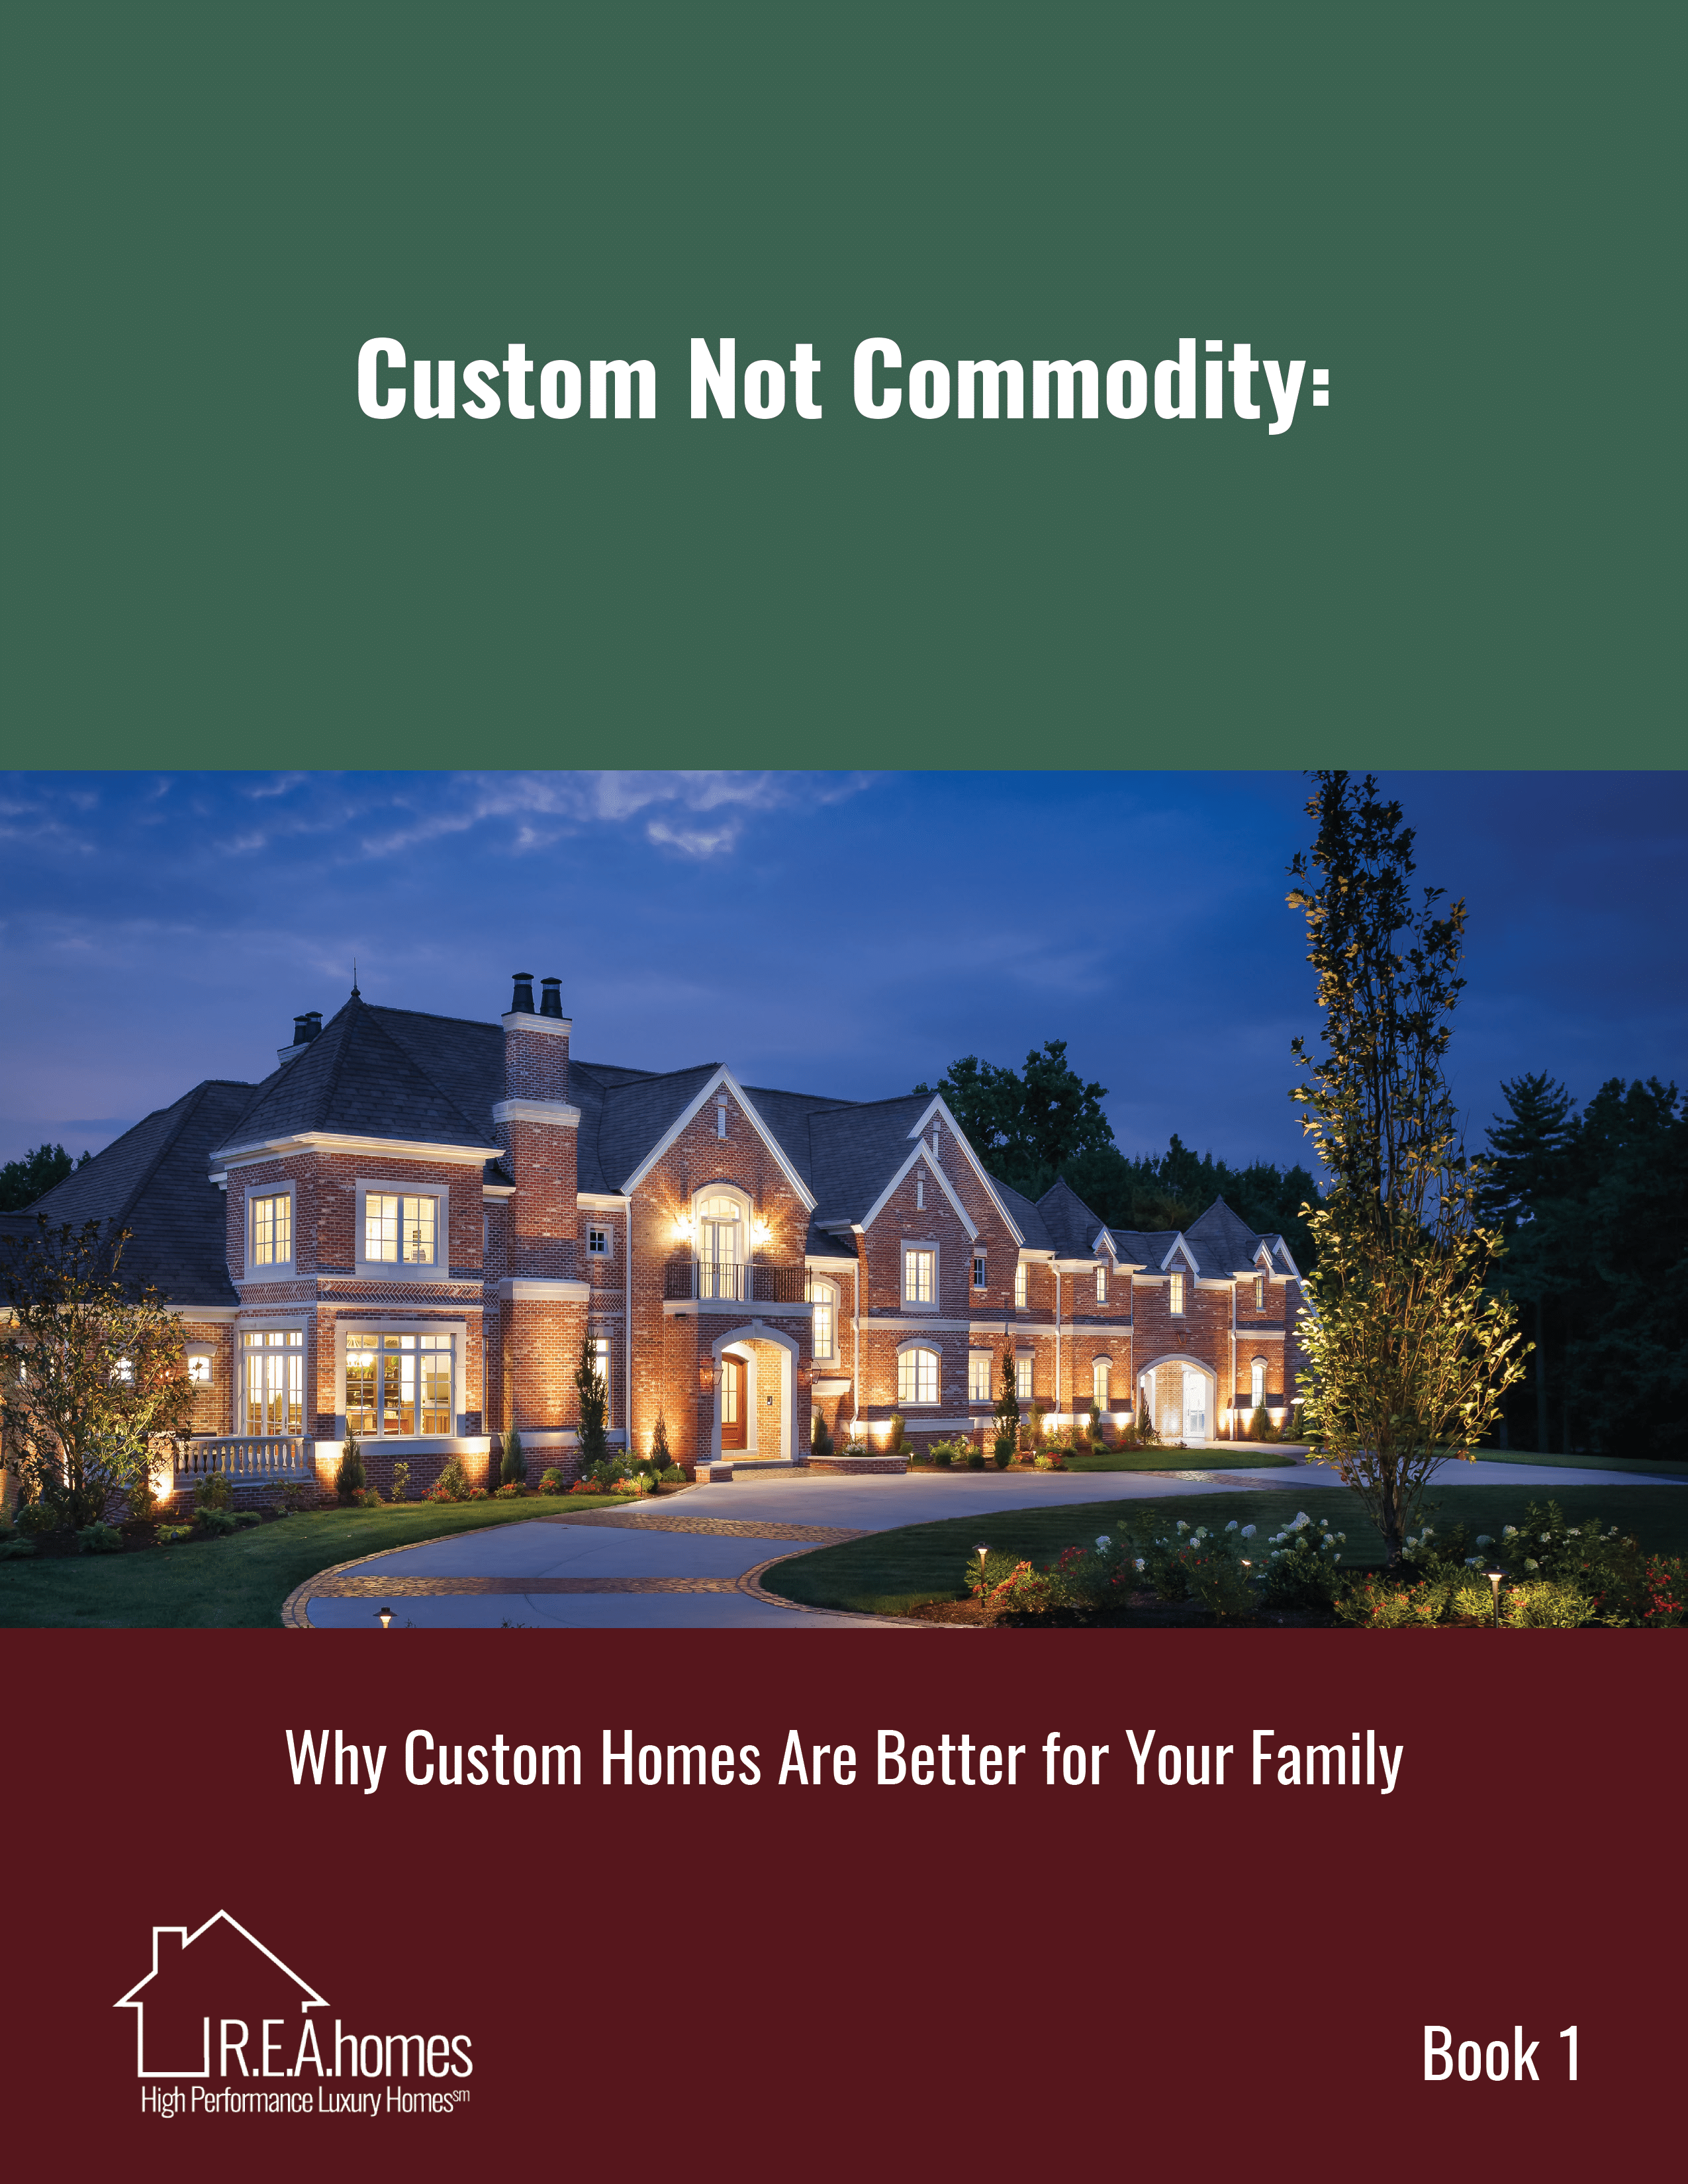 Book 1 - Custom Not Commodity Homes